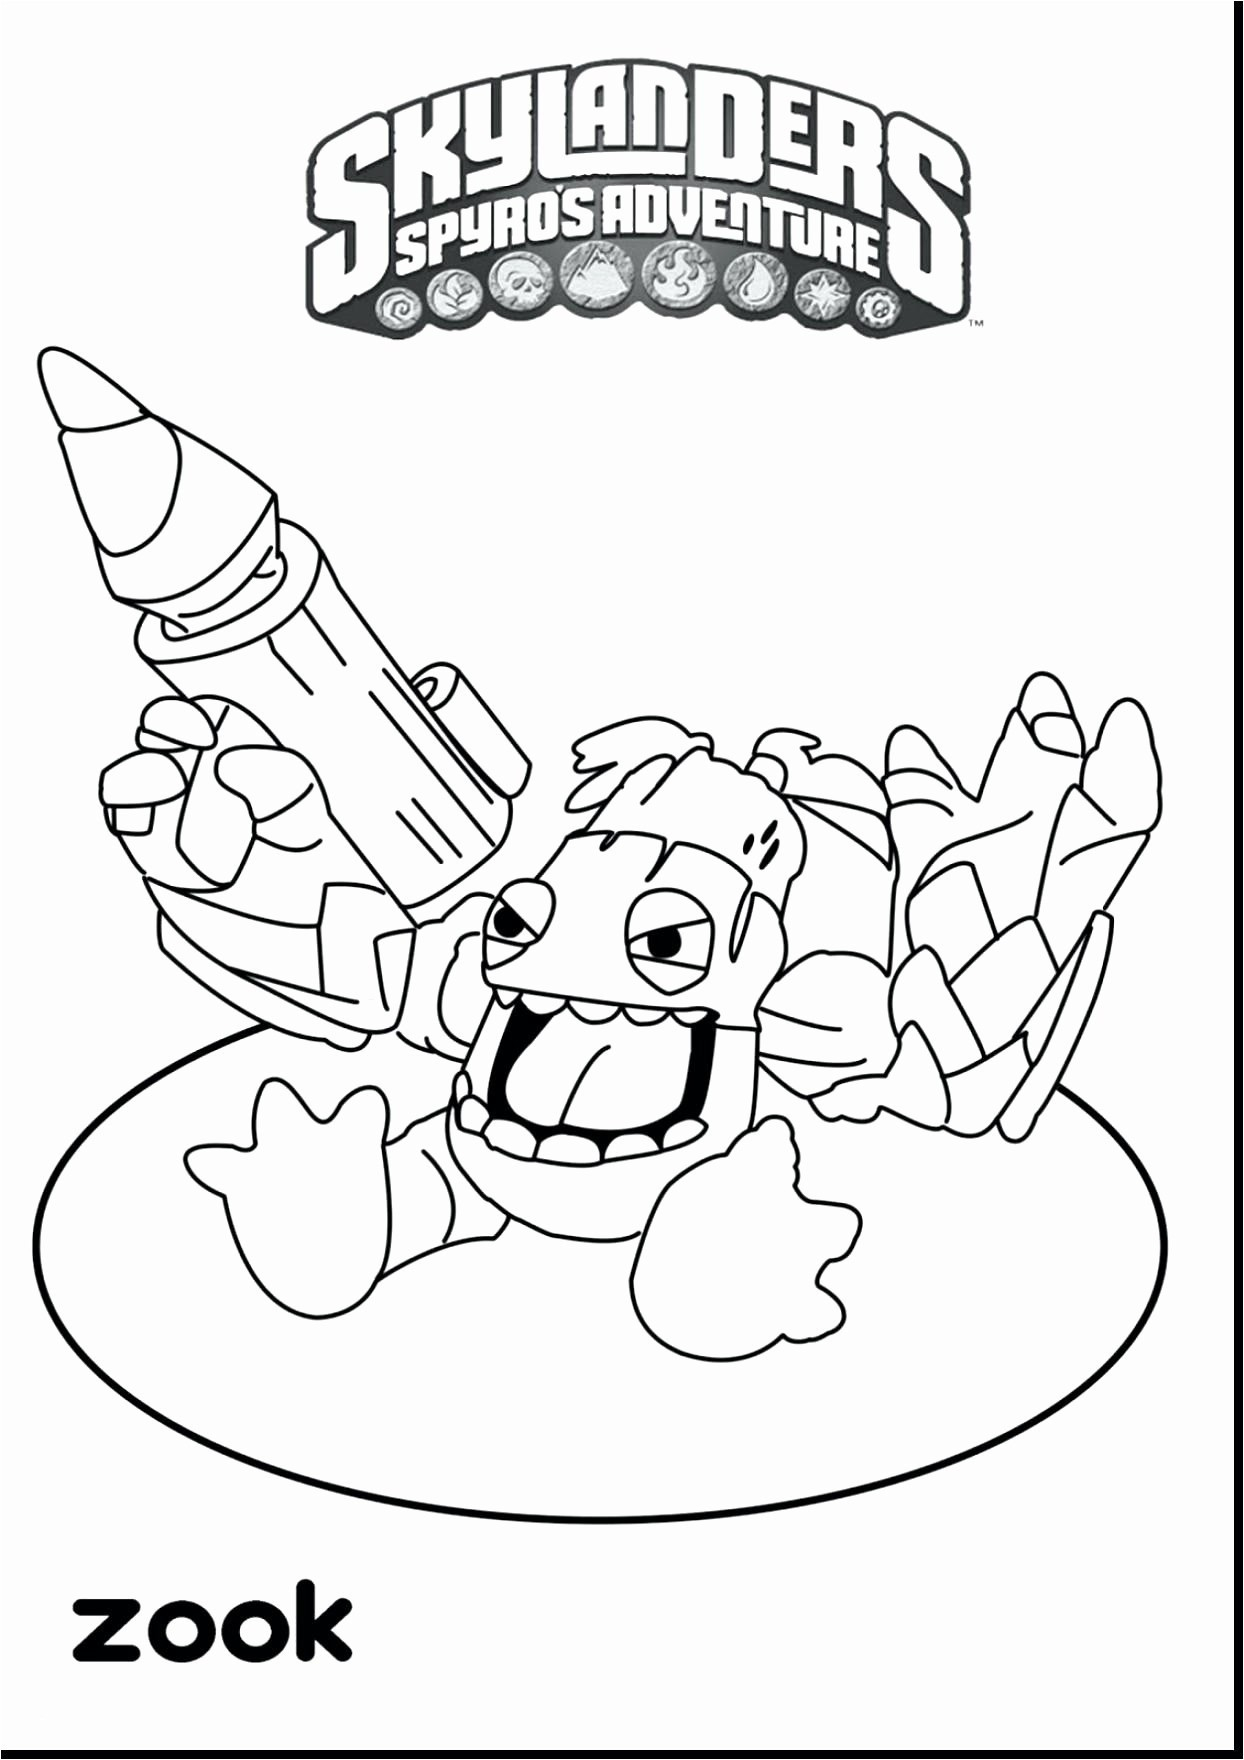 All About Me Coloring Pages  to Print 6l - Free For Children